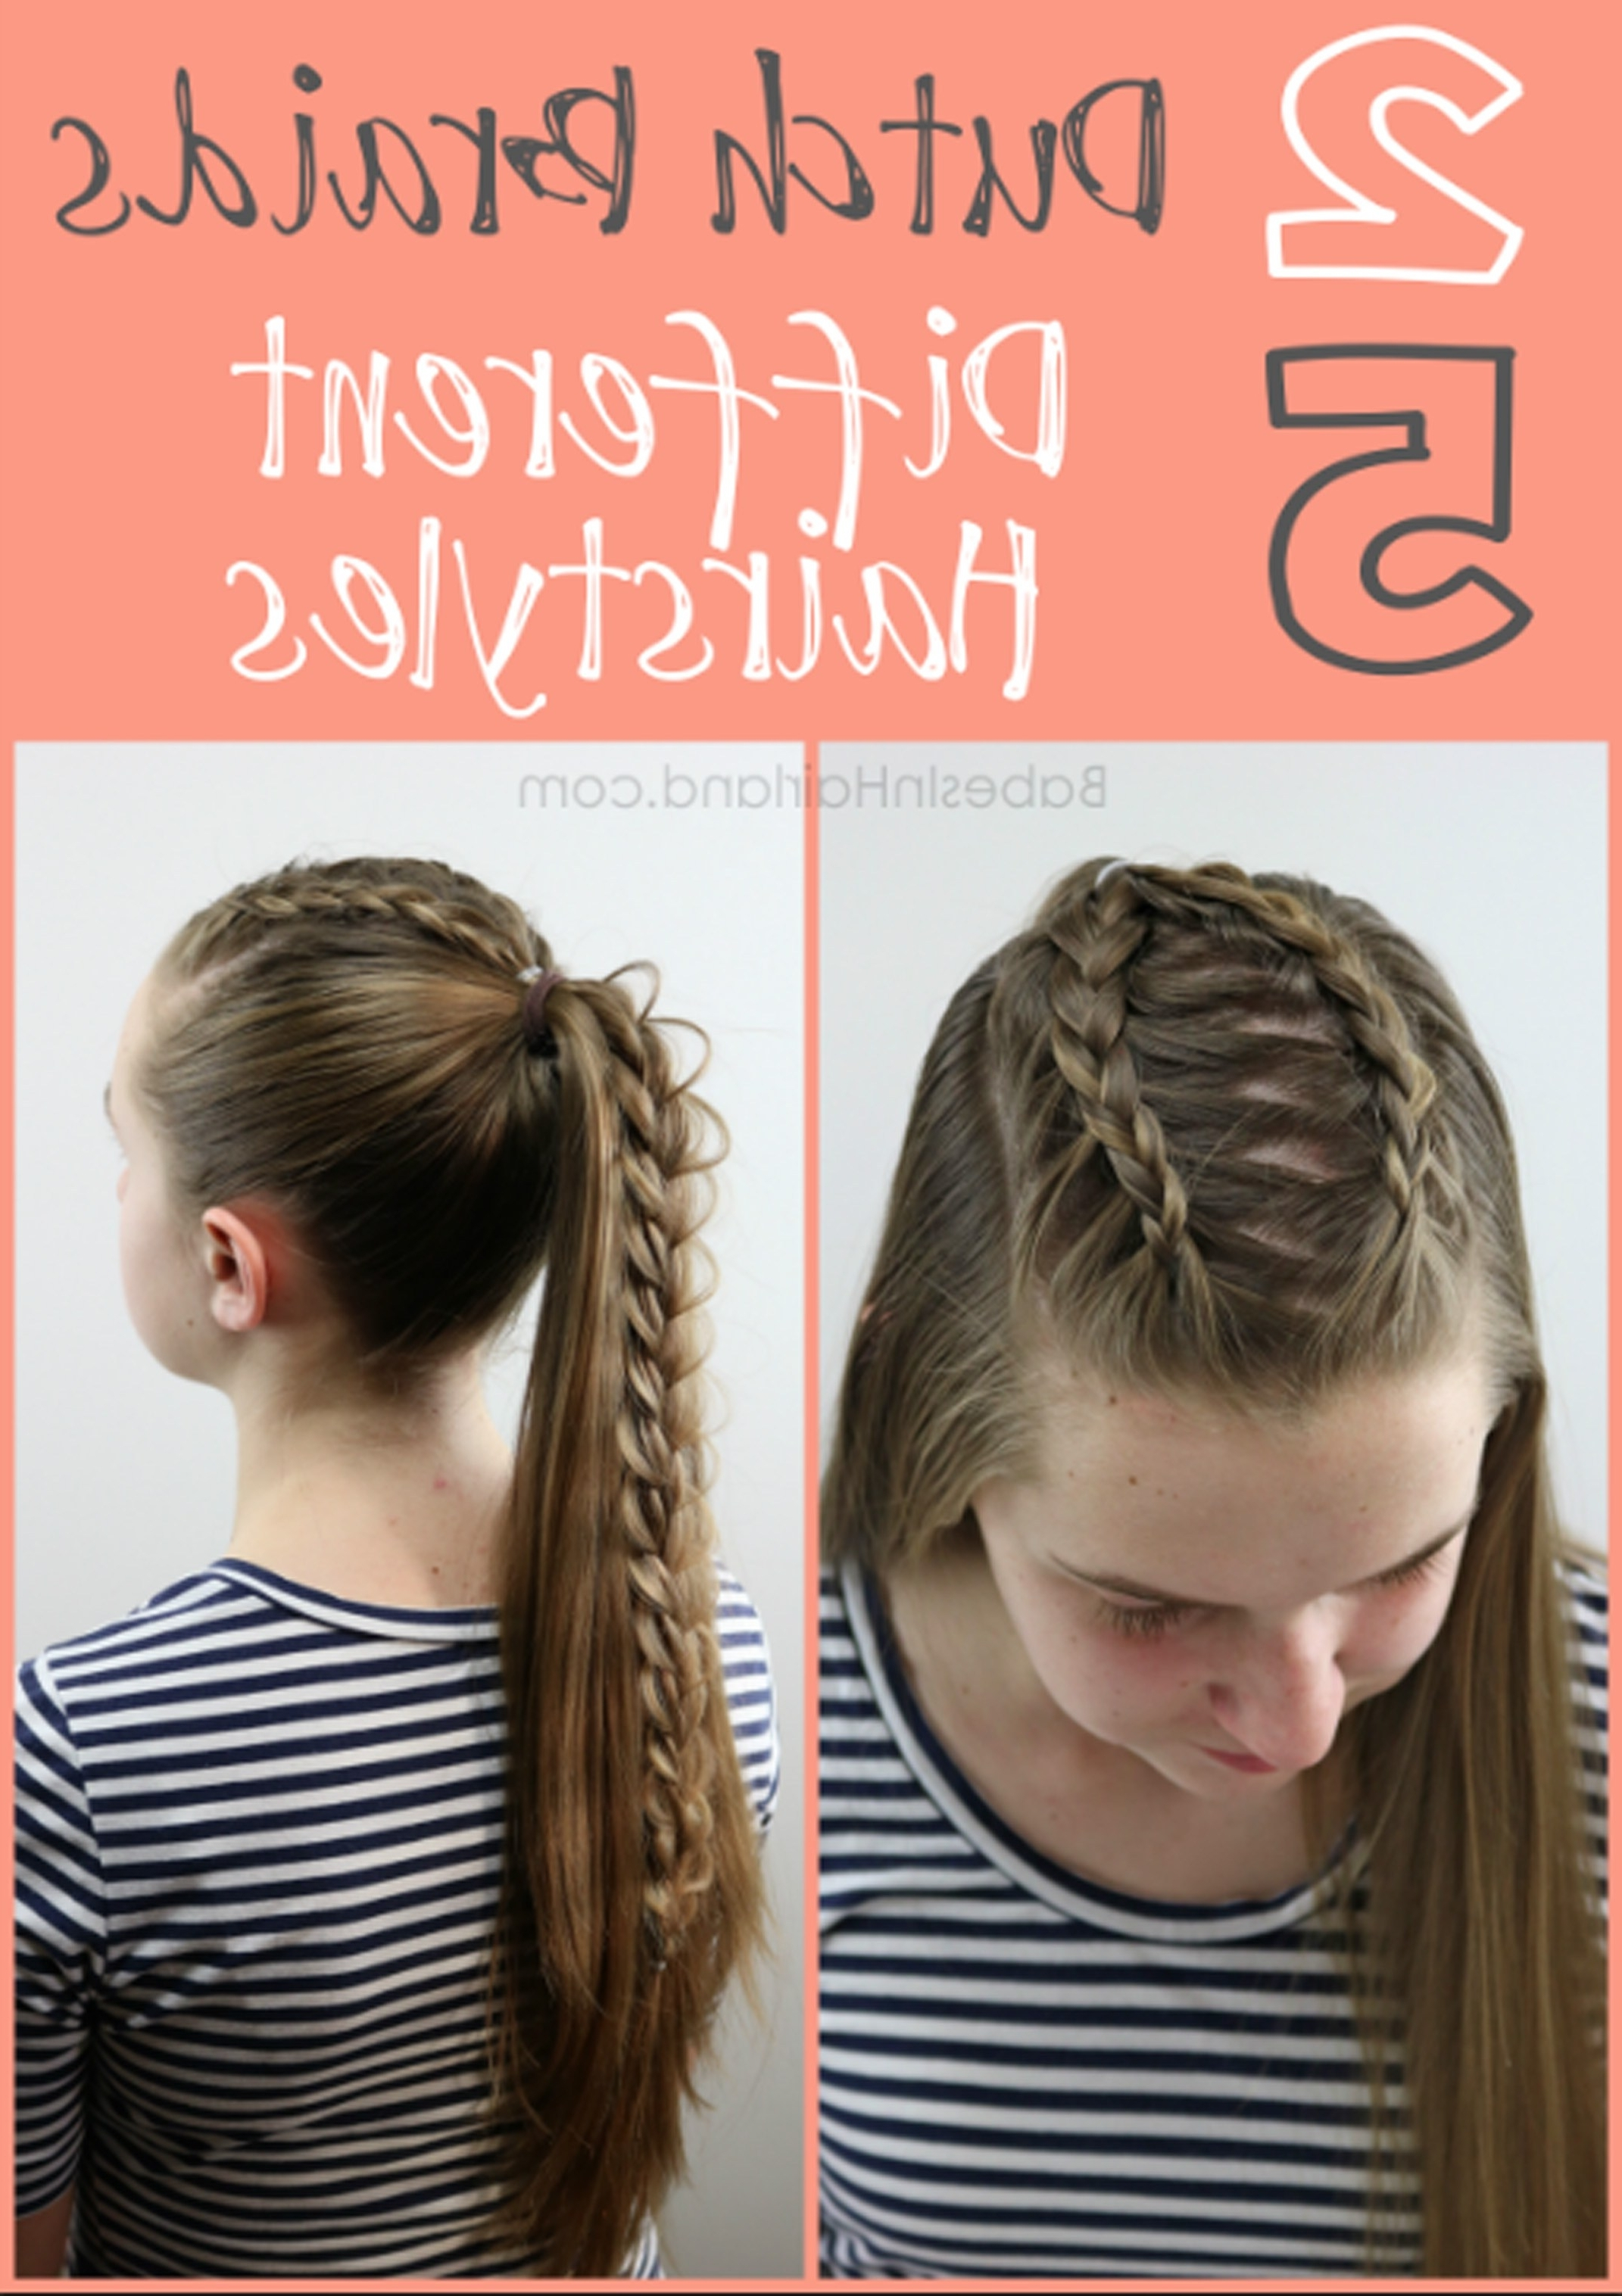 Current Ponytail Hairstyles With Dutch Braid In 2 Dutch Braids 5 Different Hairstyles (View 16 of 20)